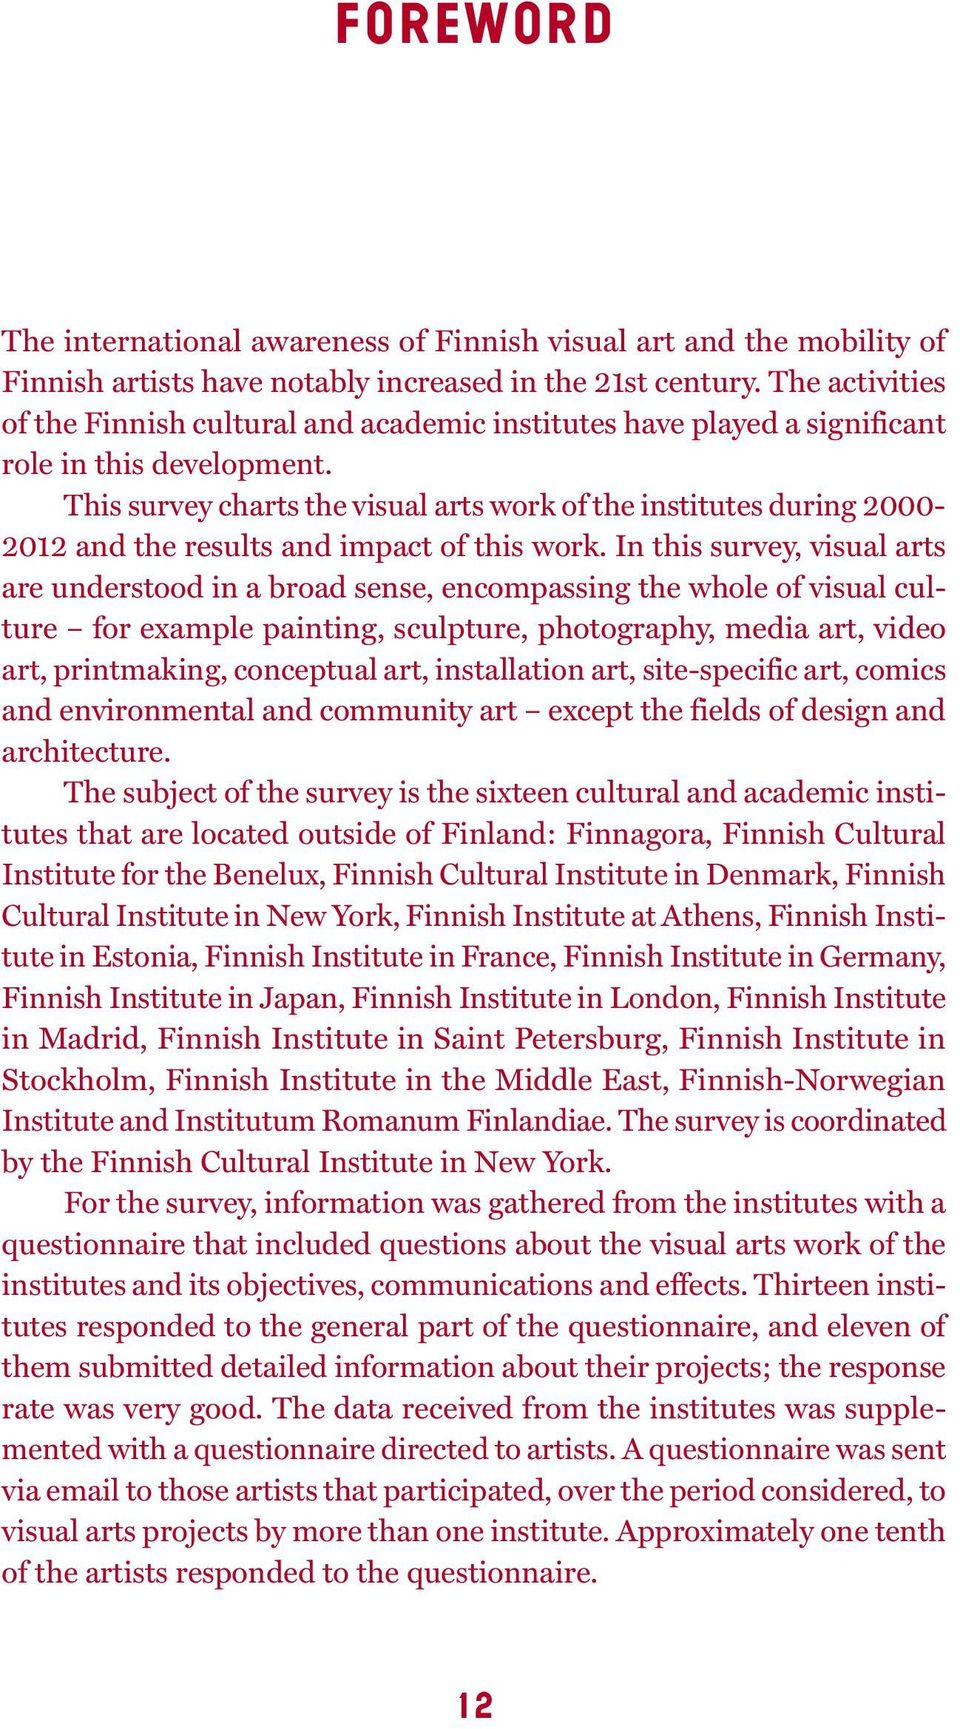 This survey charts the visual arts work of the institutes during 2000-2012 and the results and impact of this work.